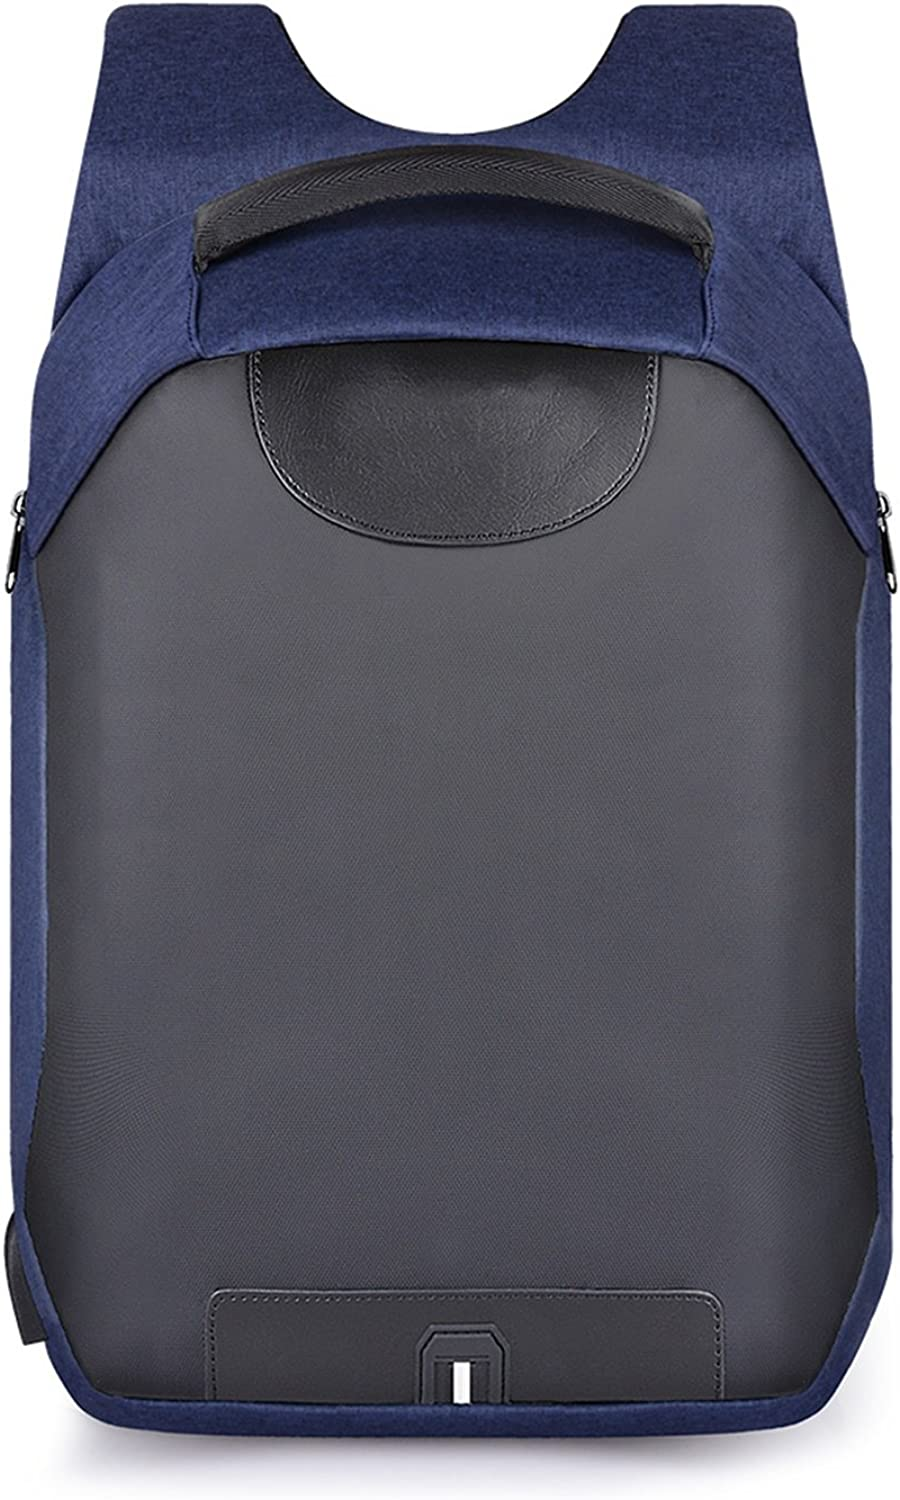 Laptop Backpack USB Charging Port School Rucksack AntiTheft Water Resistant Polyester School Bags, bluee